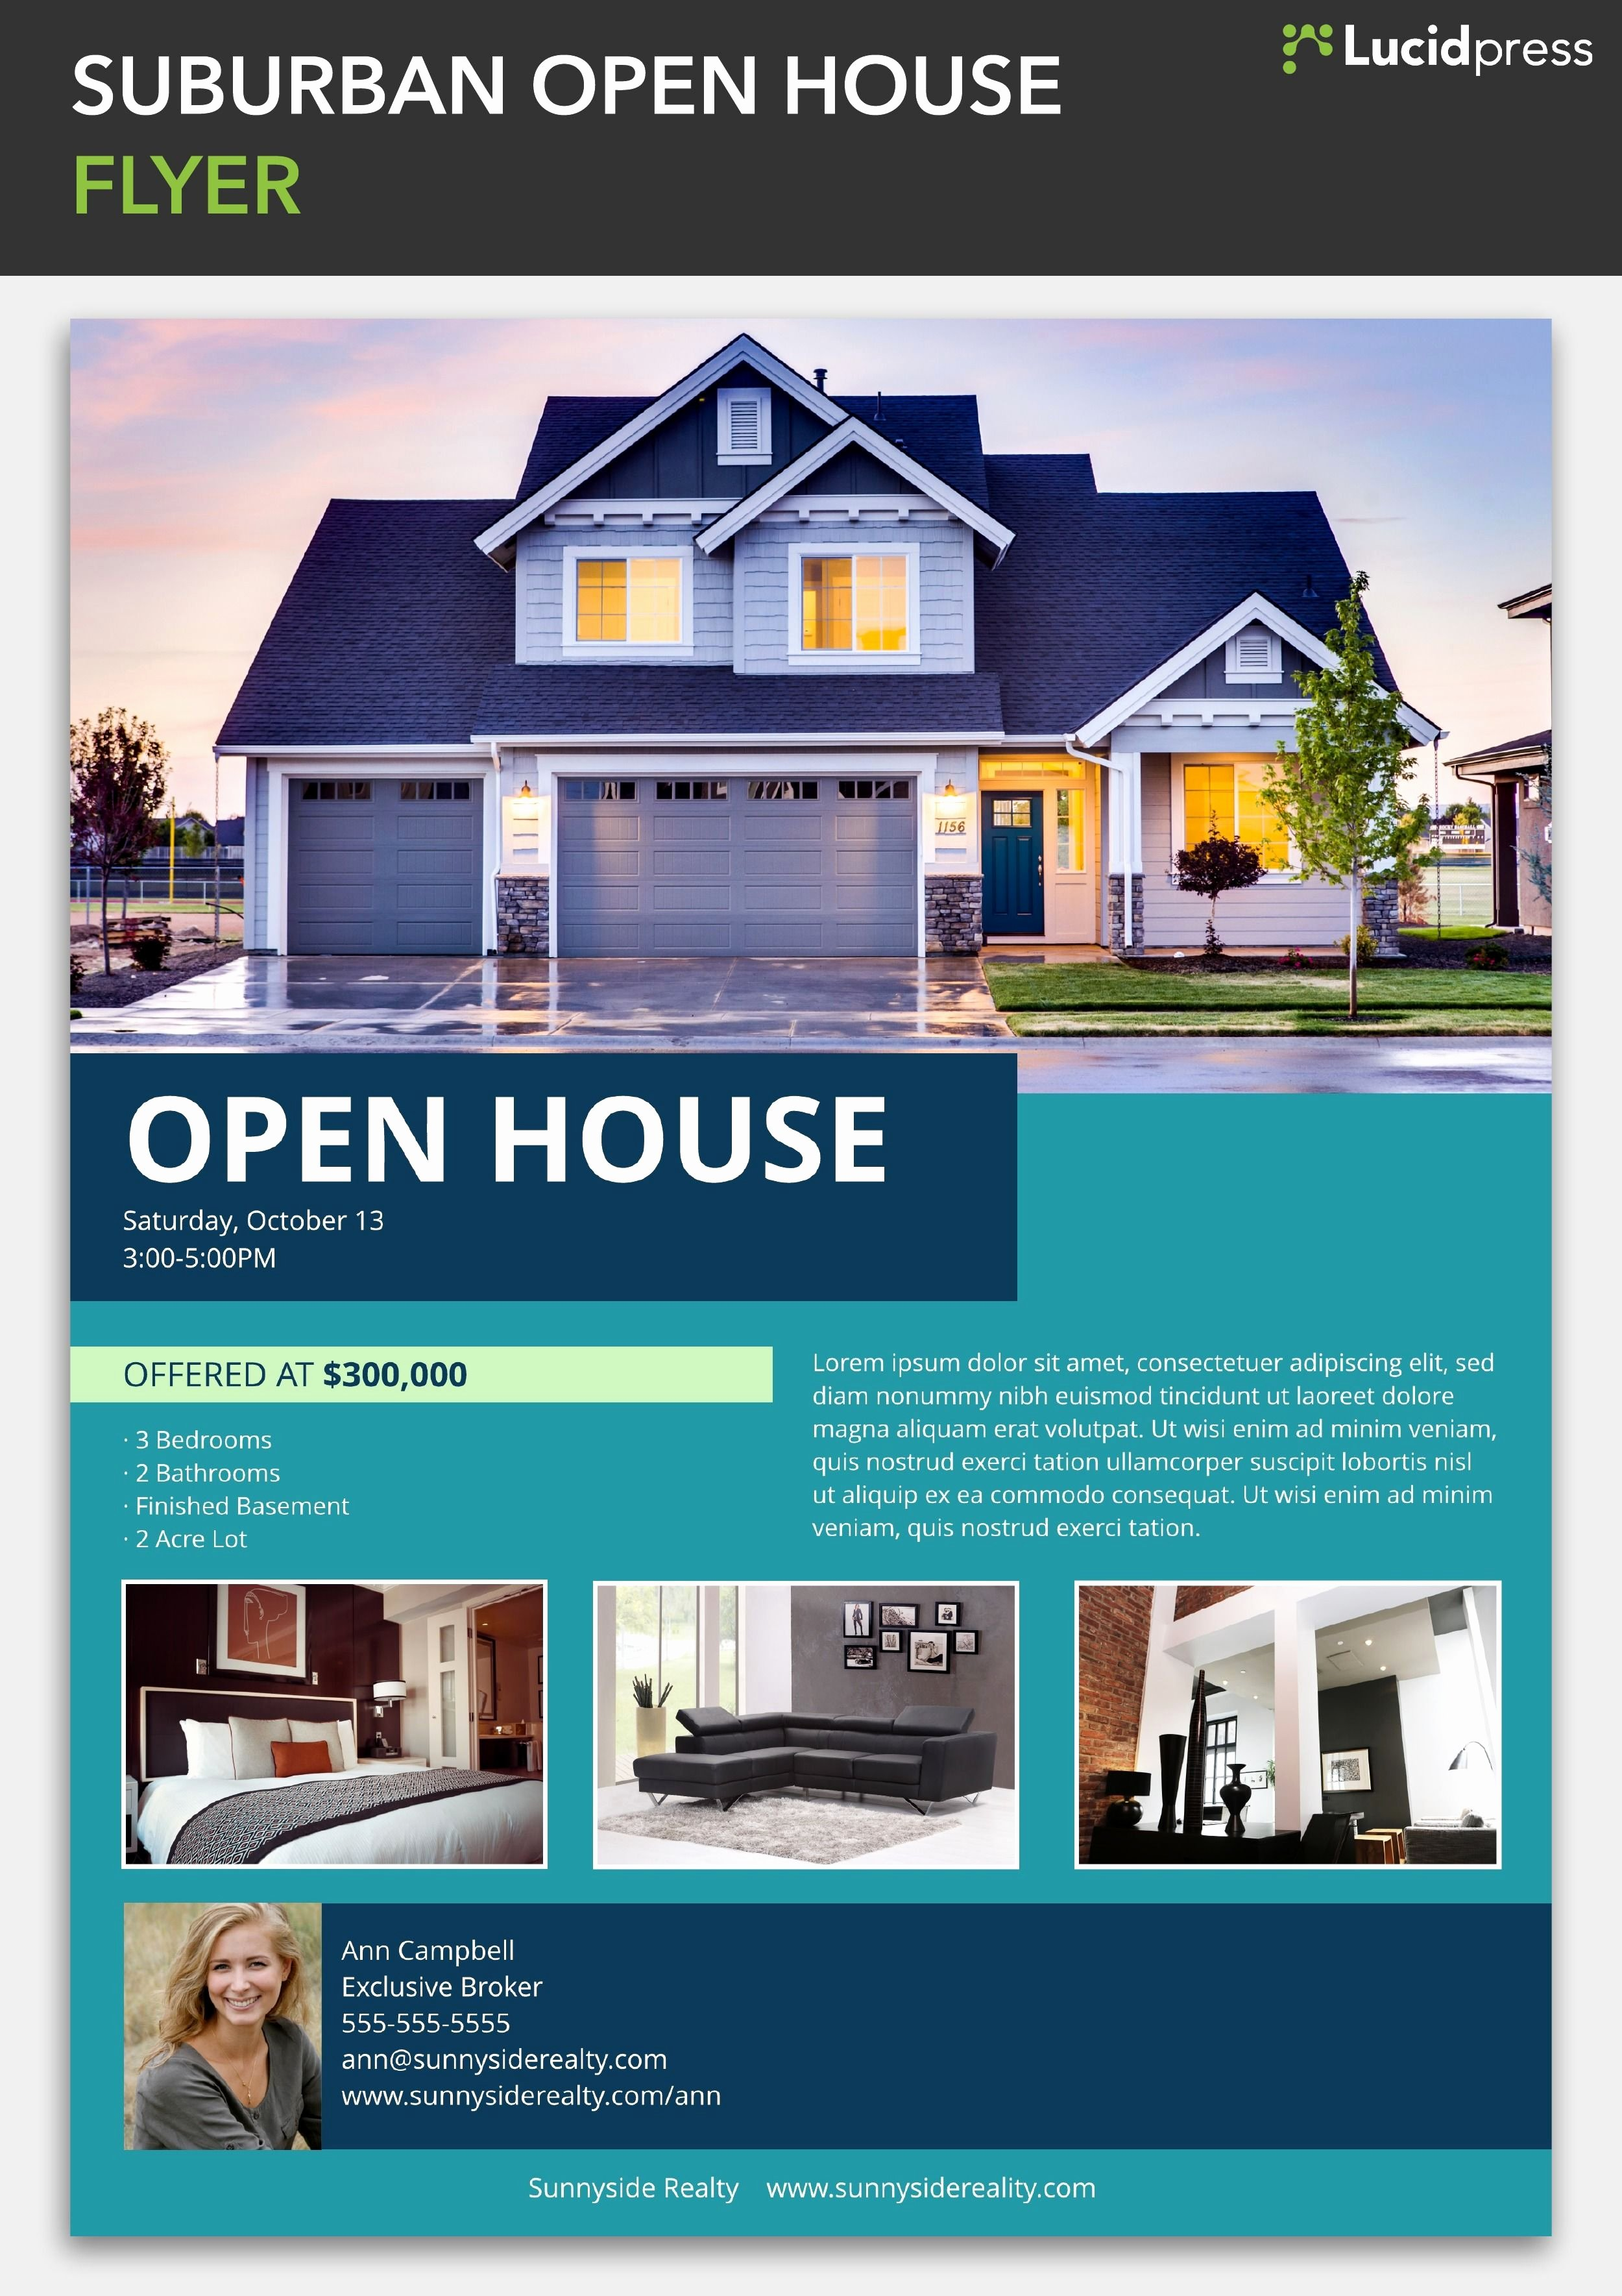 Open House Flyers Templates Awesome Suburban Open House Flyer Template